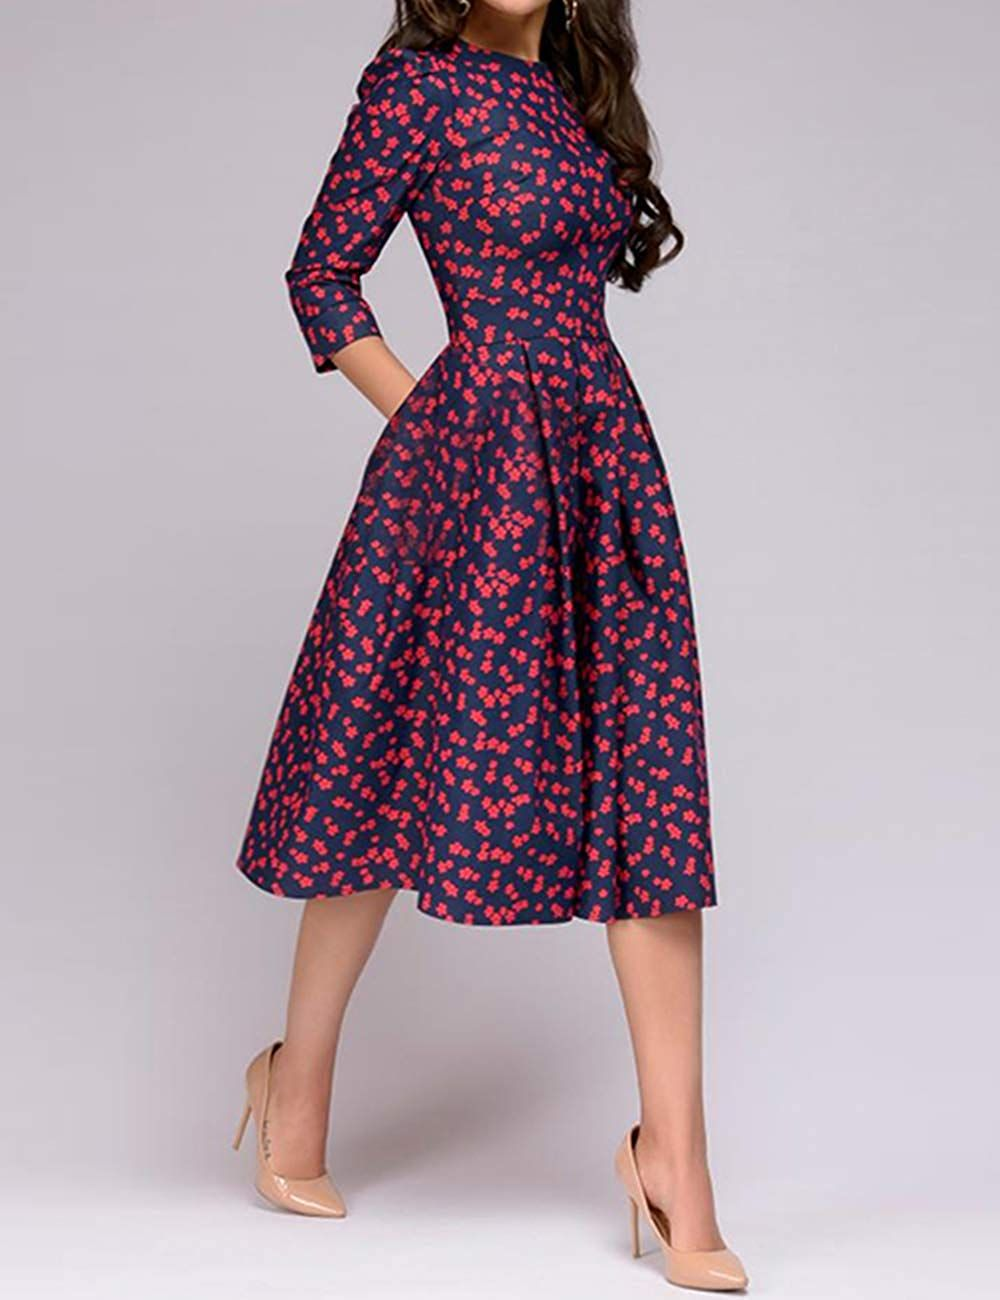 866bc205b23 Simple Flavor Women's Floral Vintage Dress Elegant Midi Evening Dress 3/4  Sleeves at Amazon Women's Clothing store: